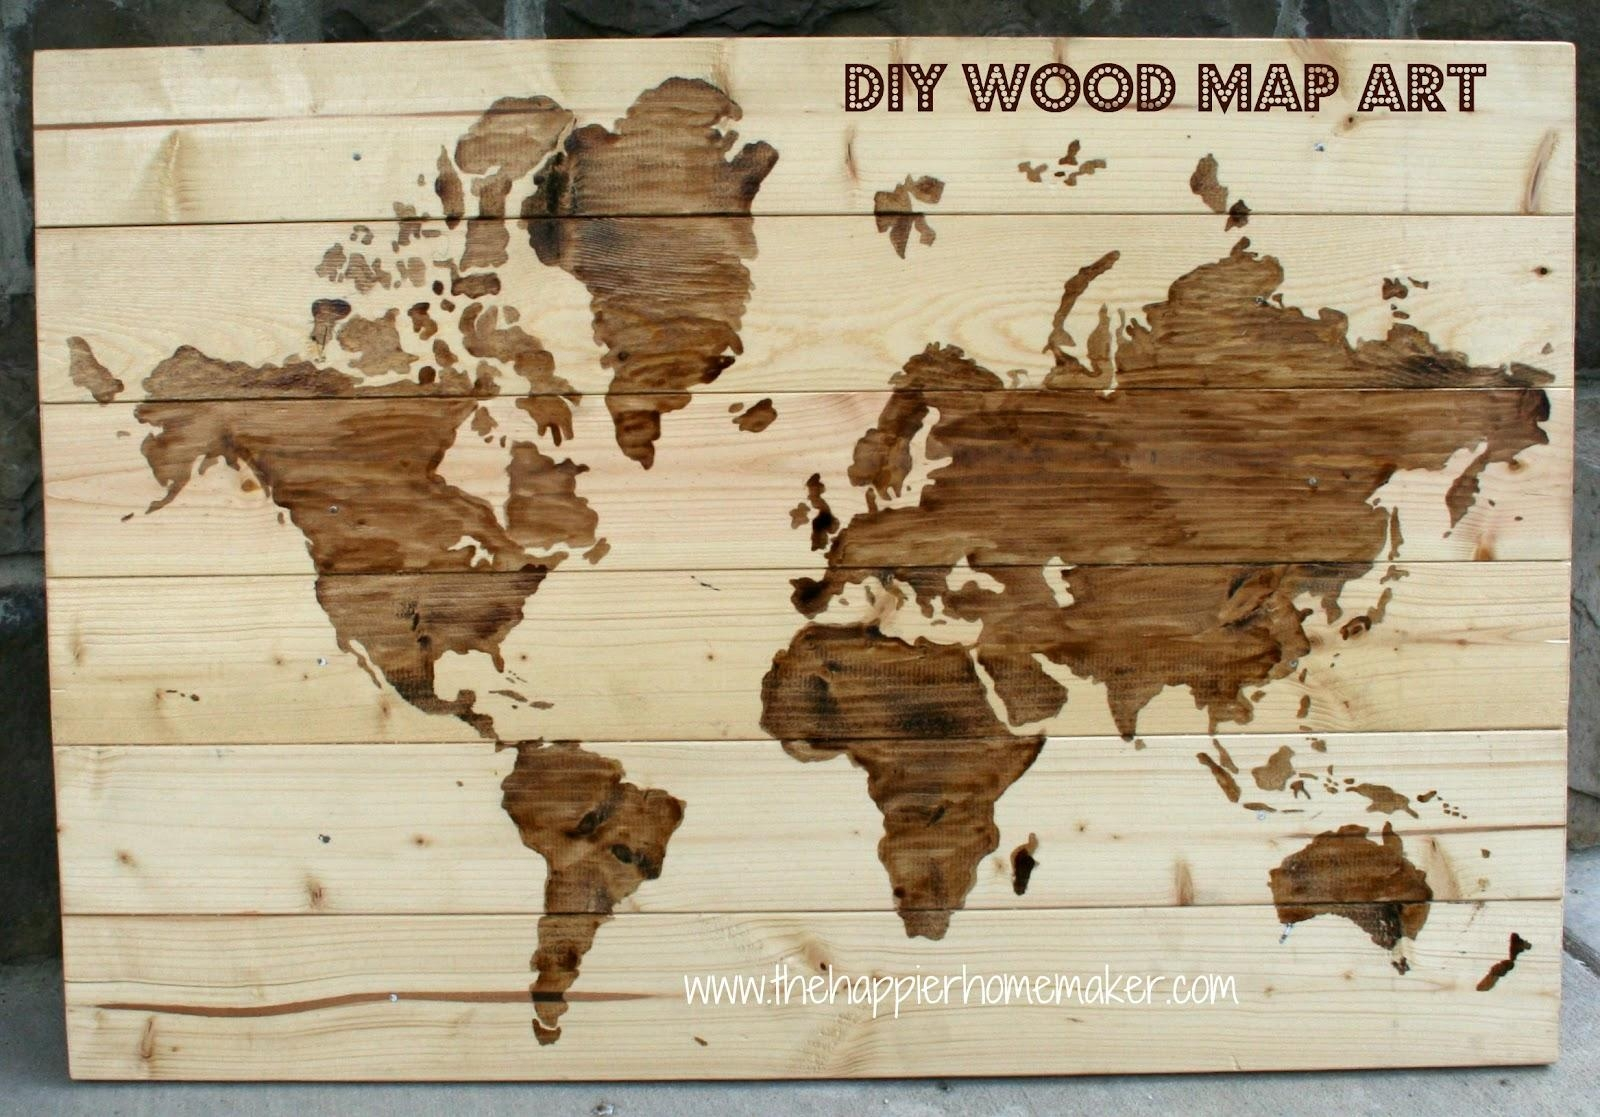 Diy Wooden World Map Art | The Happier Homemaker In Stained Wood Wall Art (View 18 of 20)